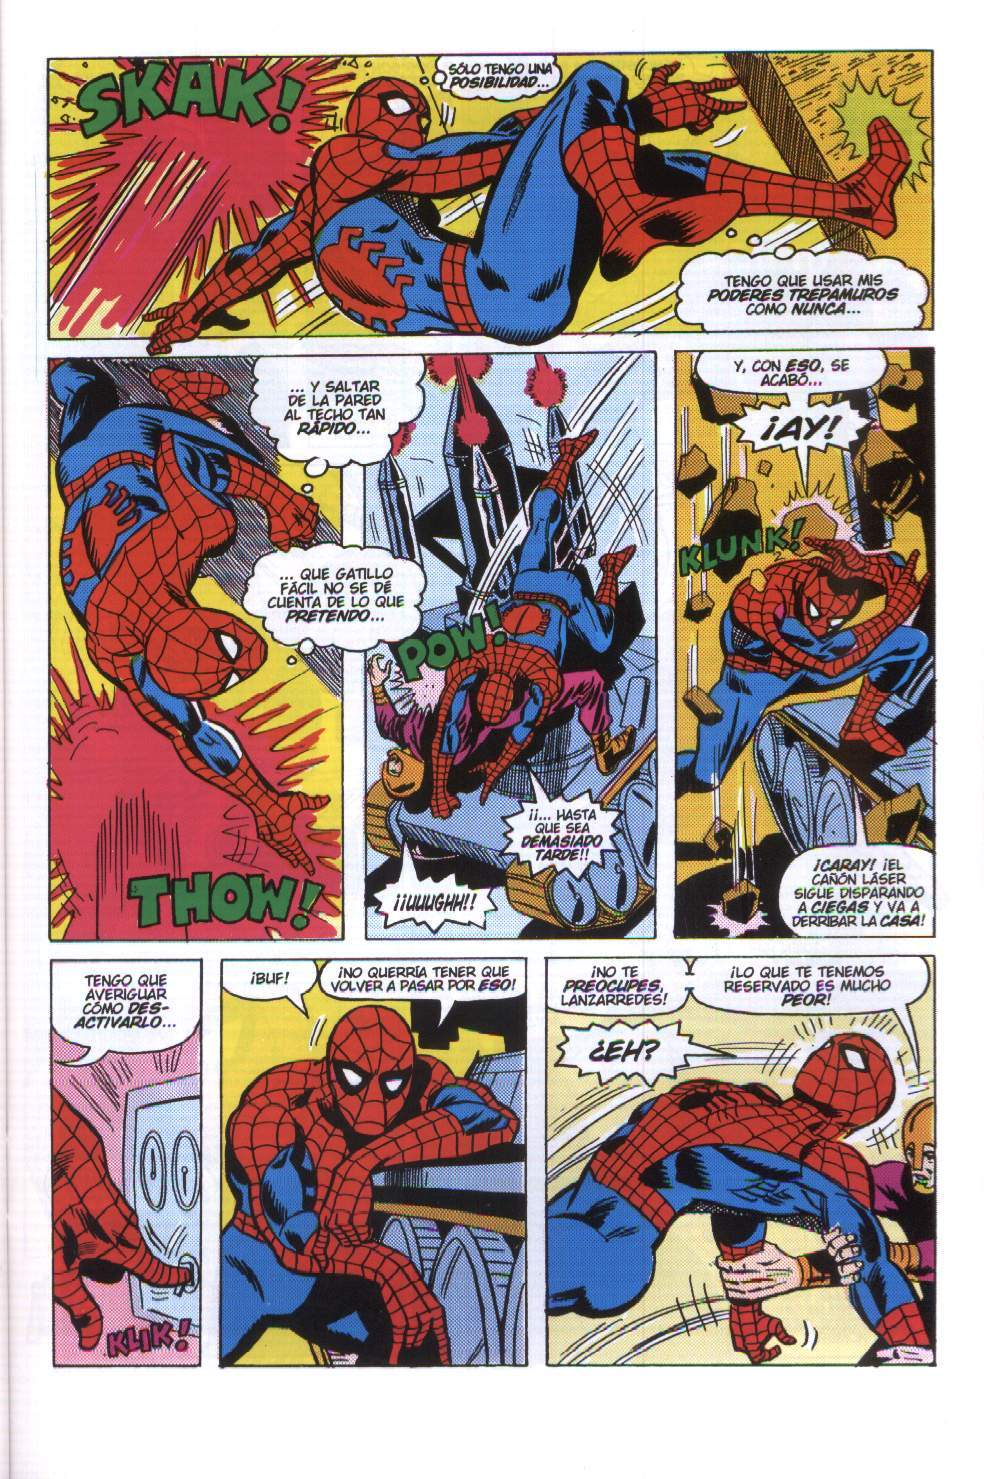 The Amazing Spider-Man #169